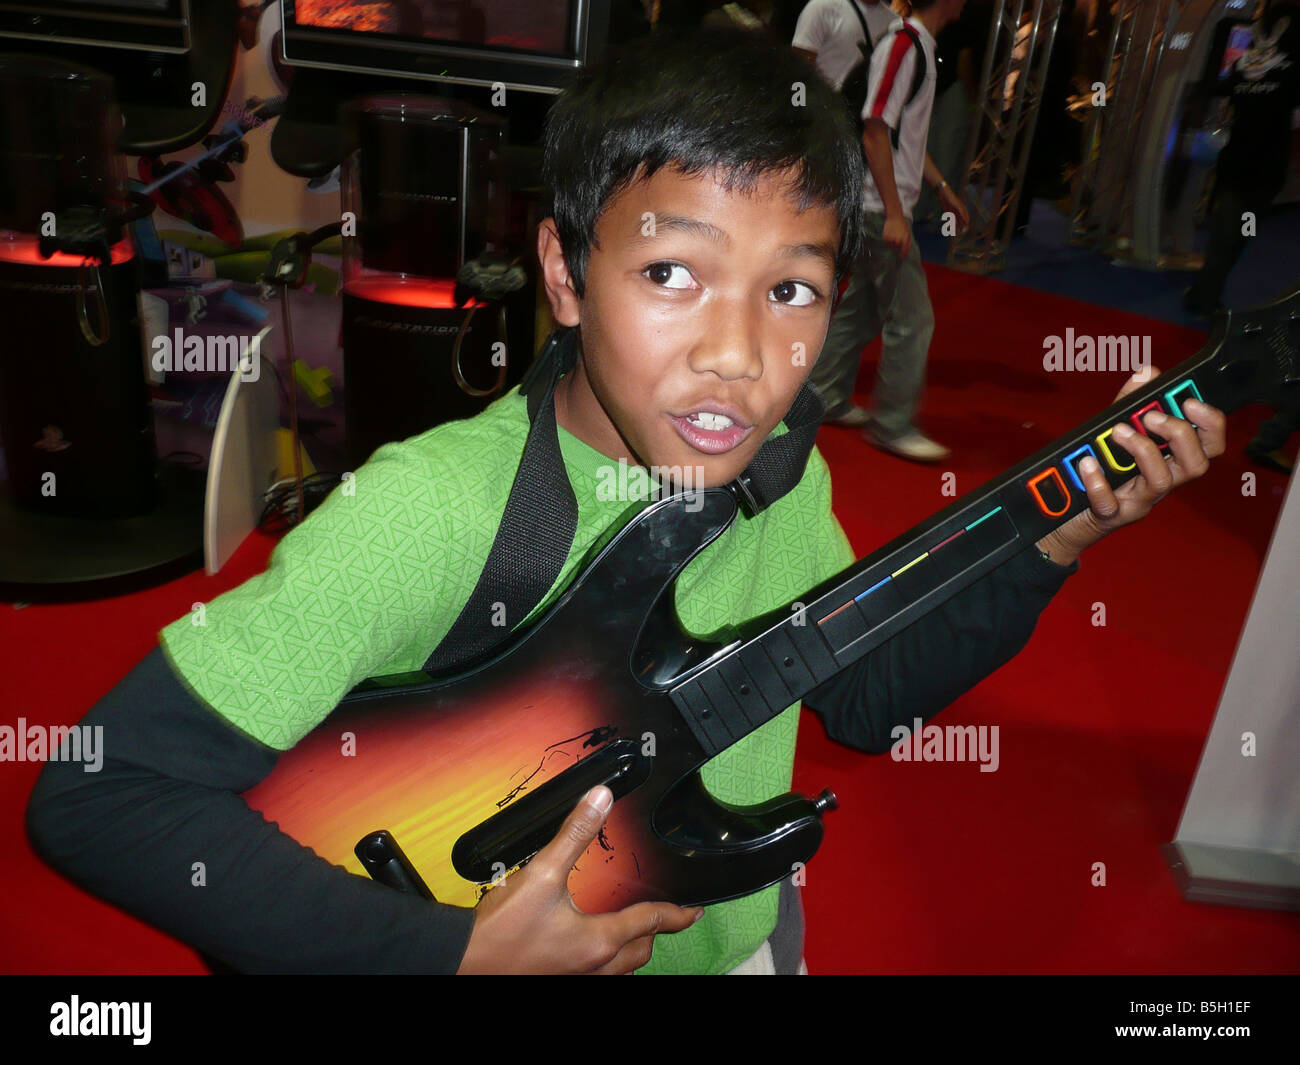 boy playing with Guitar Hero, Sony PS3 - Stock Image